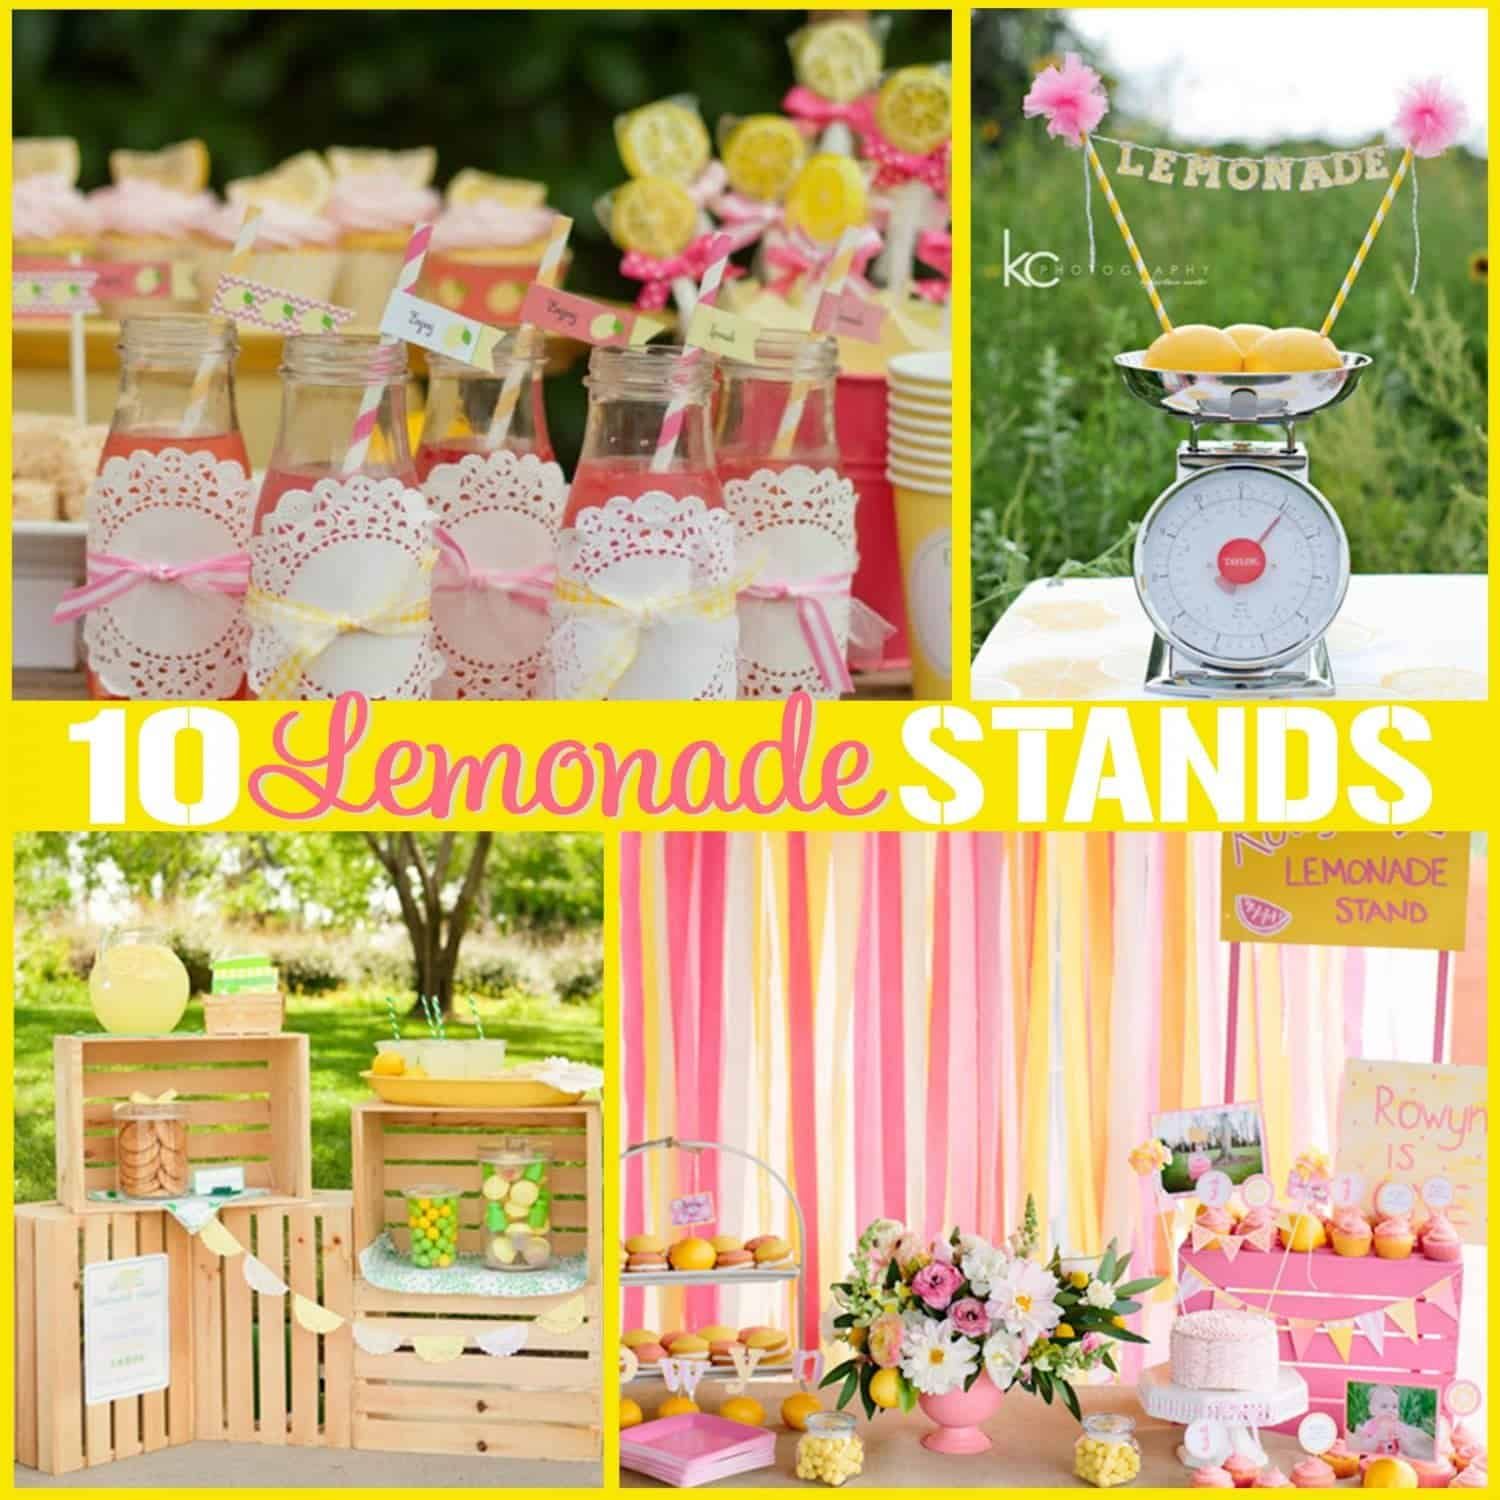 Lemonade Stand: 10 Lemonade Stands for Summer